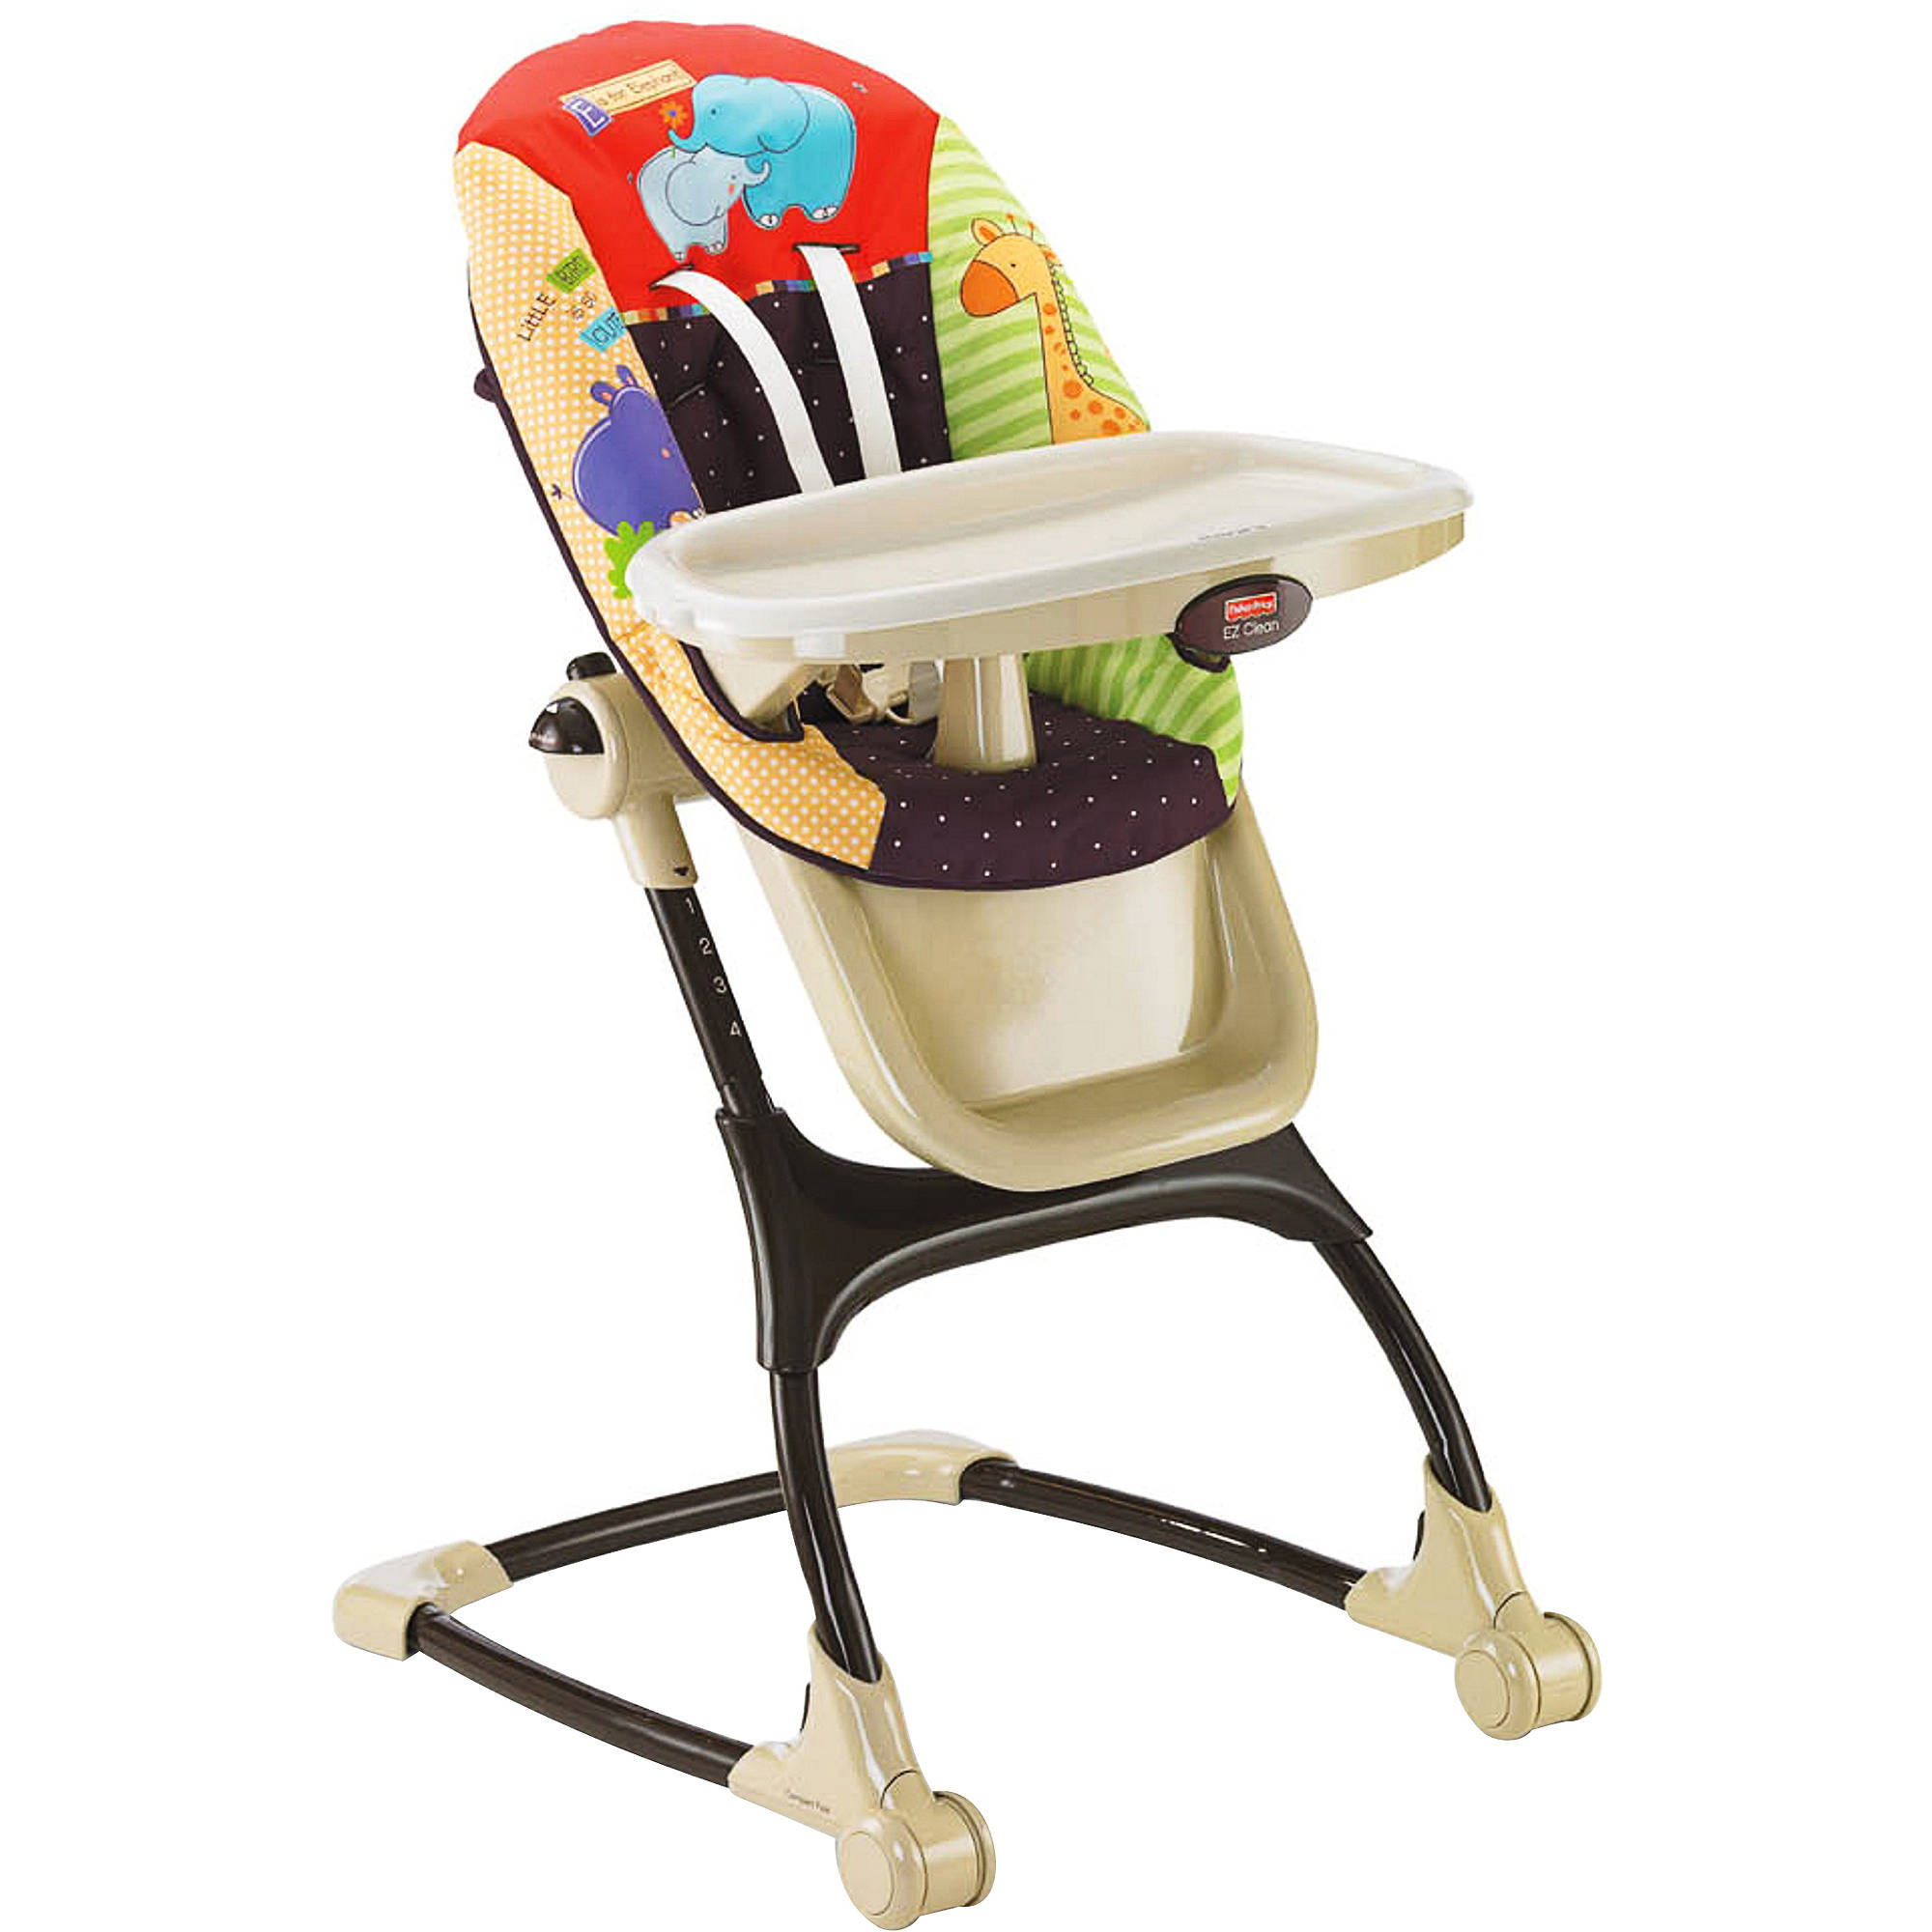 Fisher price precious planet high chair - Fisher Price Spacesaver High Chair Rainforest Friends Walmart Com